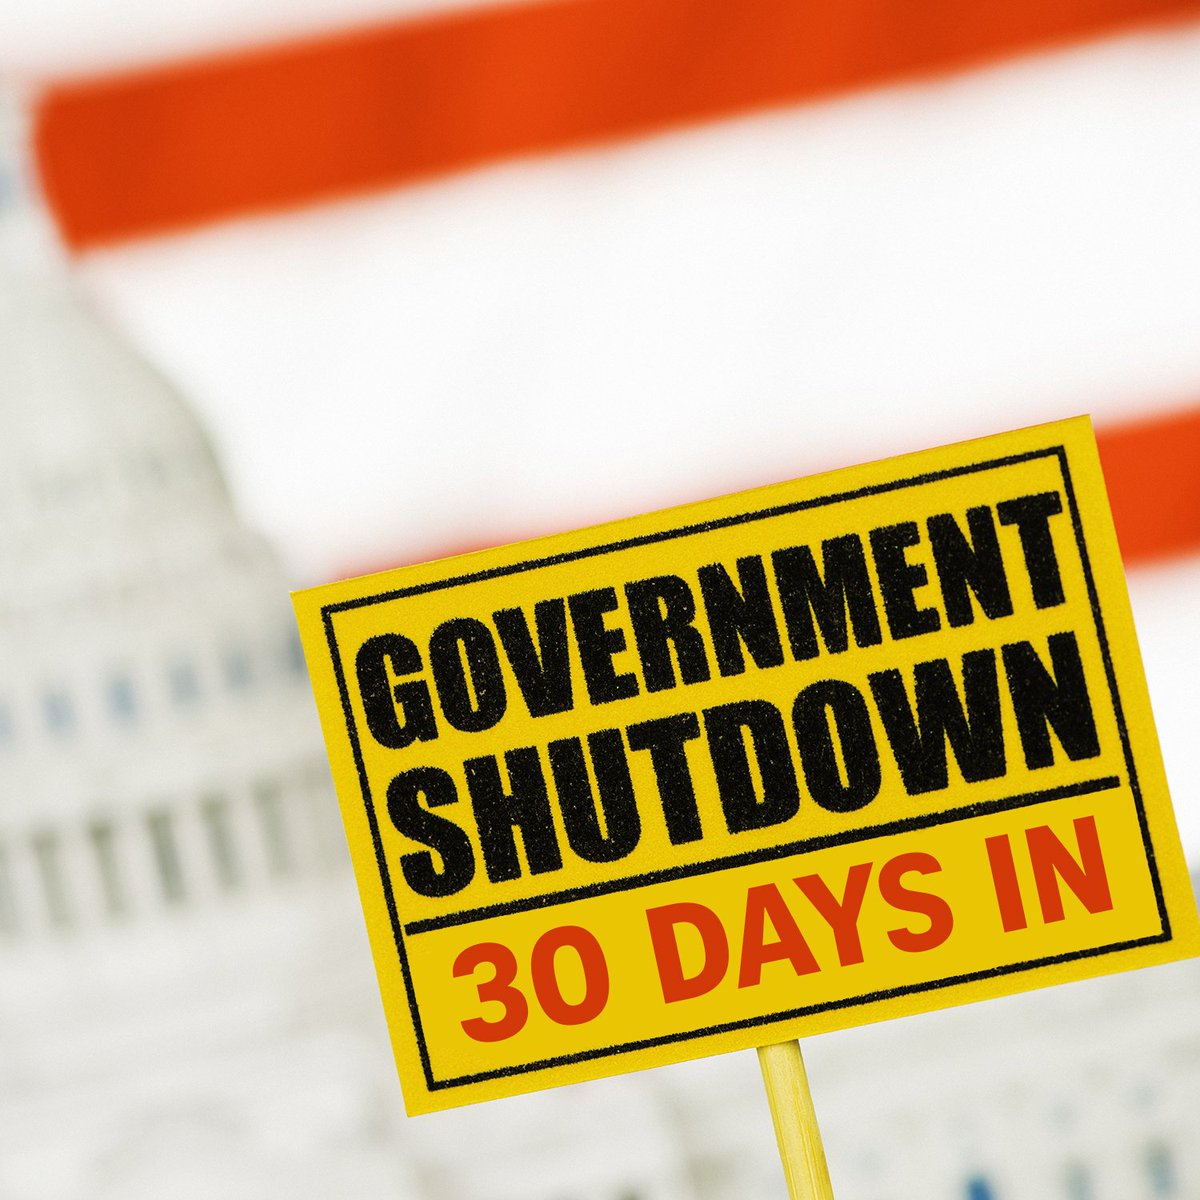 It's officially DAY 30 of the #Shutdown-- here's the latest:  https://t.co/eH9rfS8YJ5